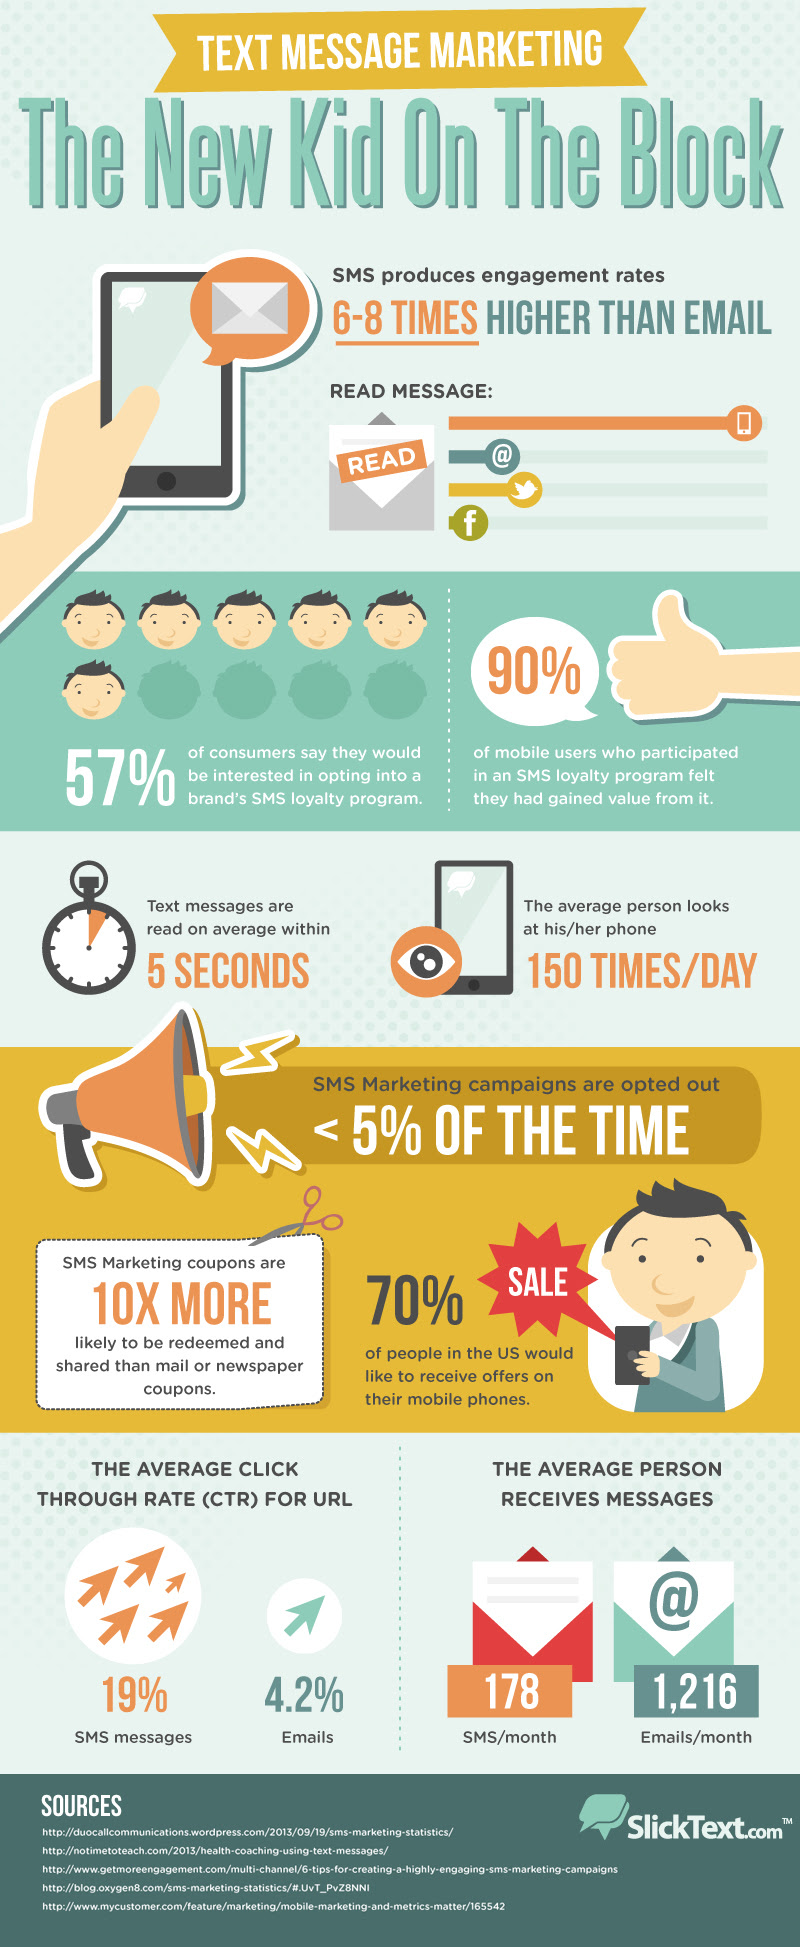 Infographic: Text Message Marketing: The New Kid On The Block